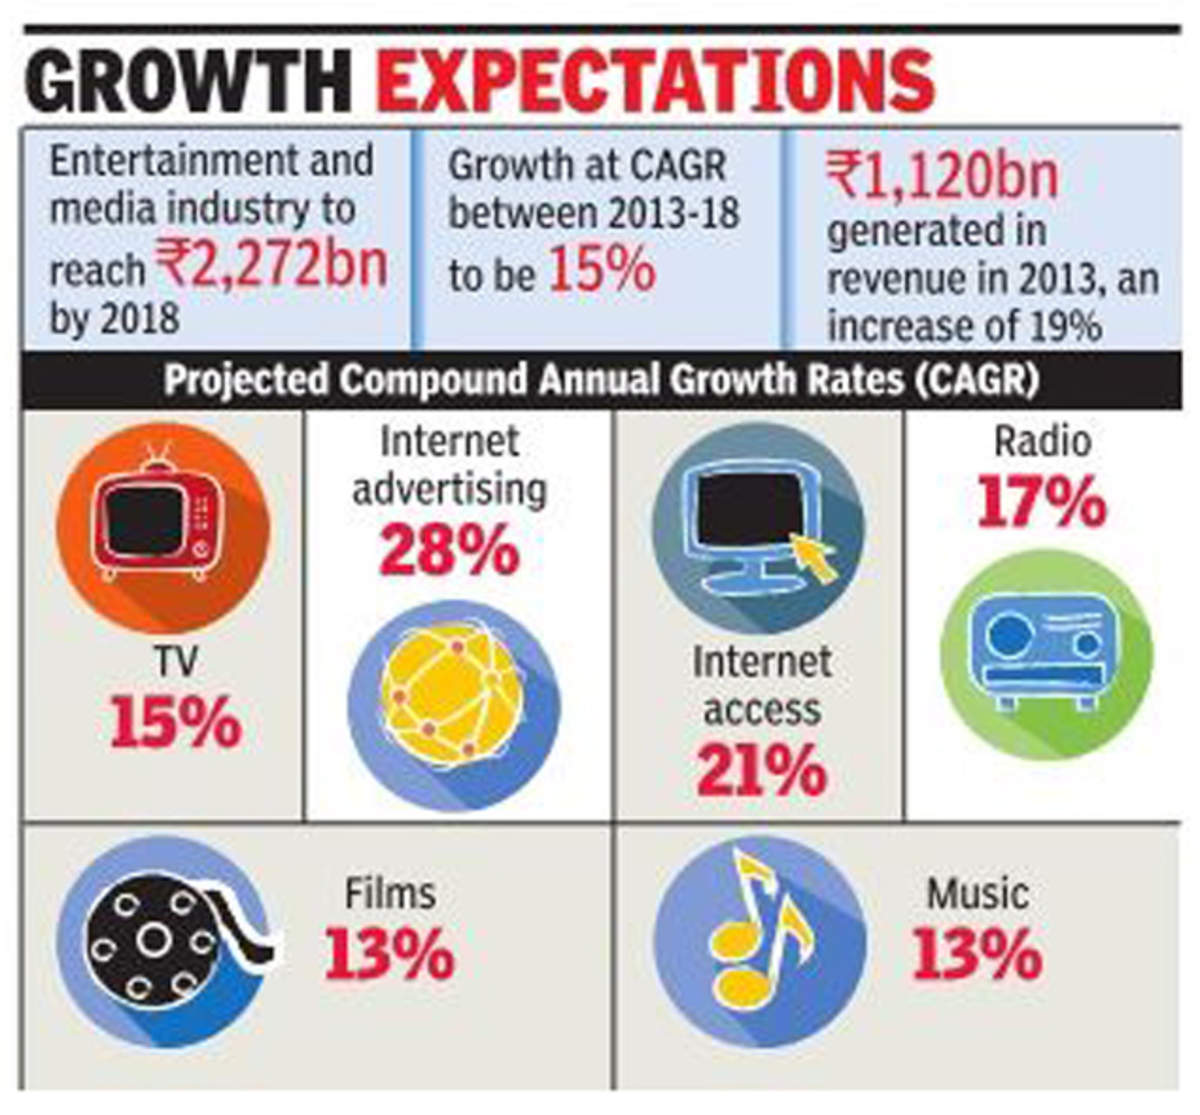 Indian entertainment industry to be worth 2,272 billion by 2018